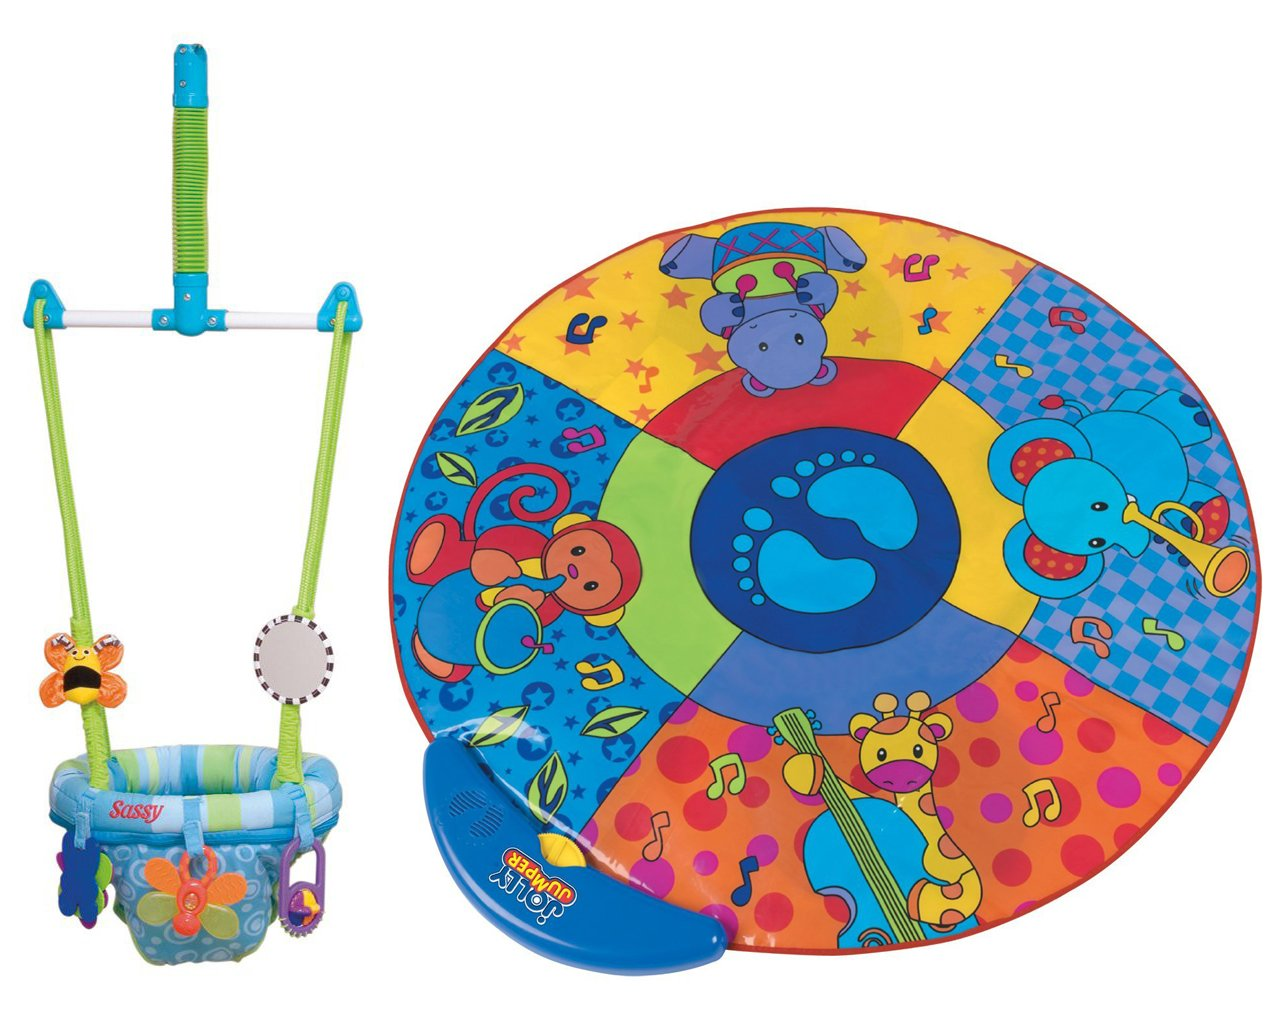 Sassy Seat Doorway Jumper, 5 Toys with Musical Play Mat погремушка вертушка на присоске sassy